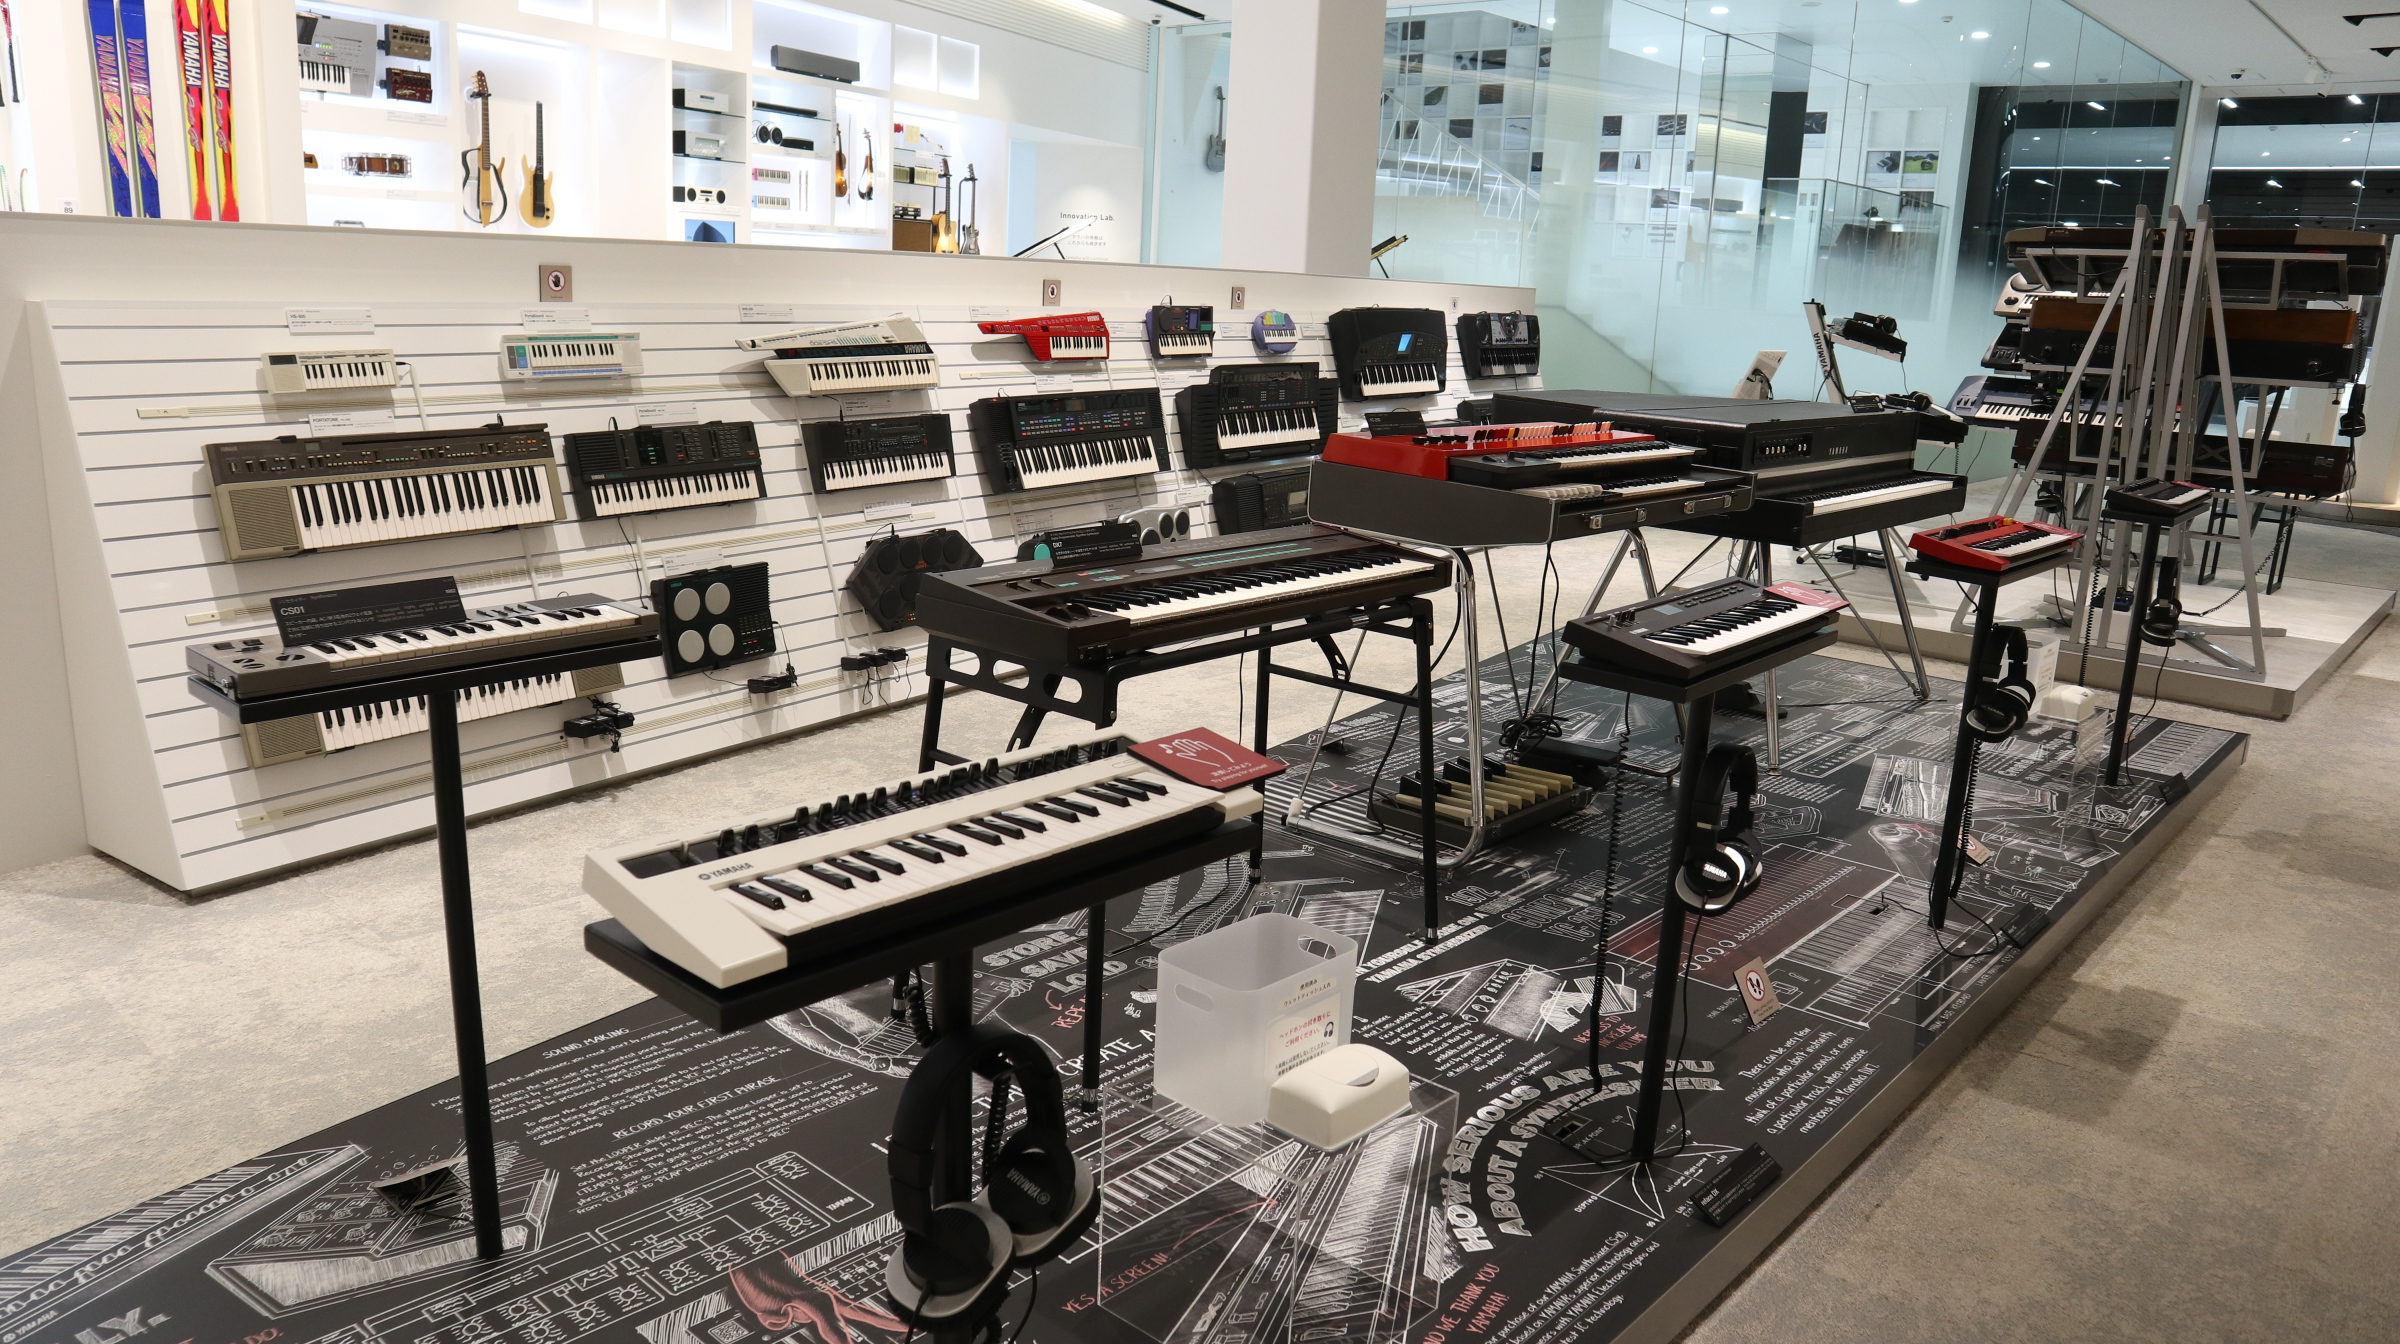 Keyboards, both past and present